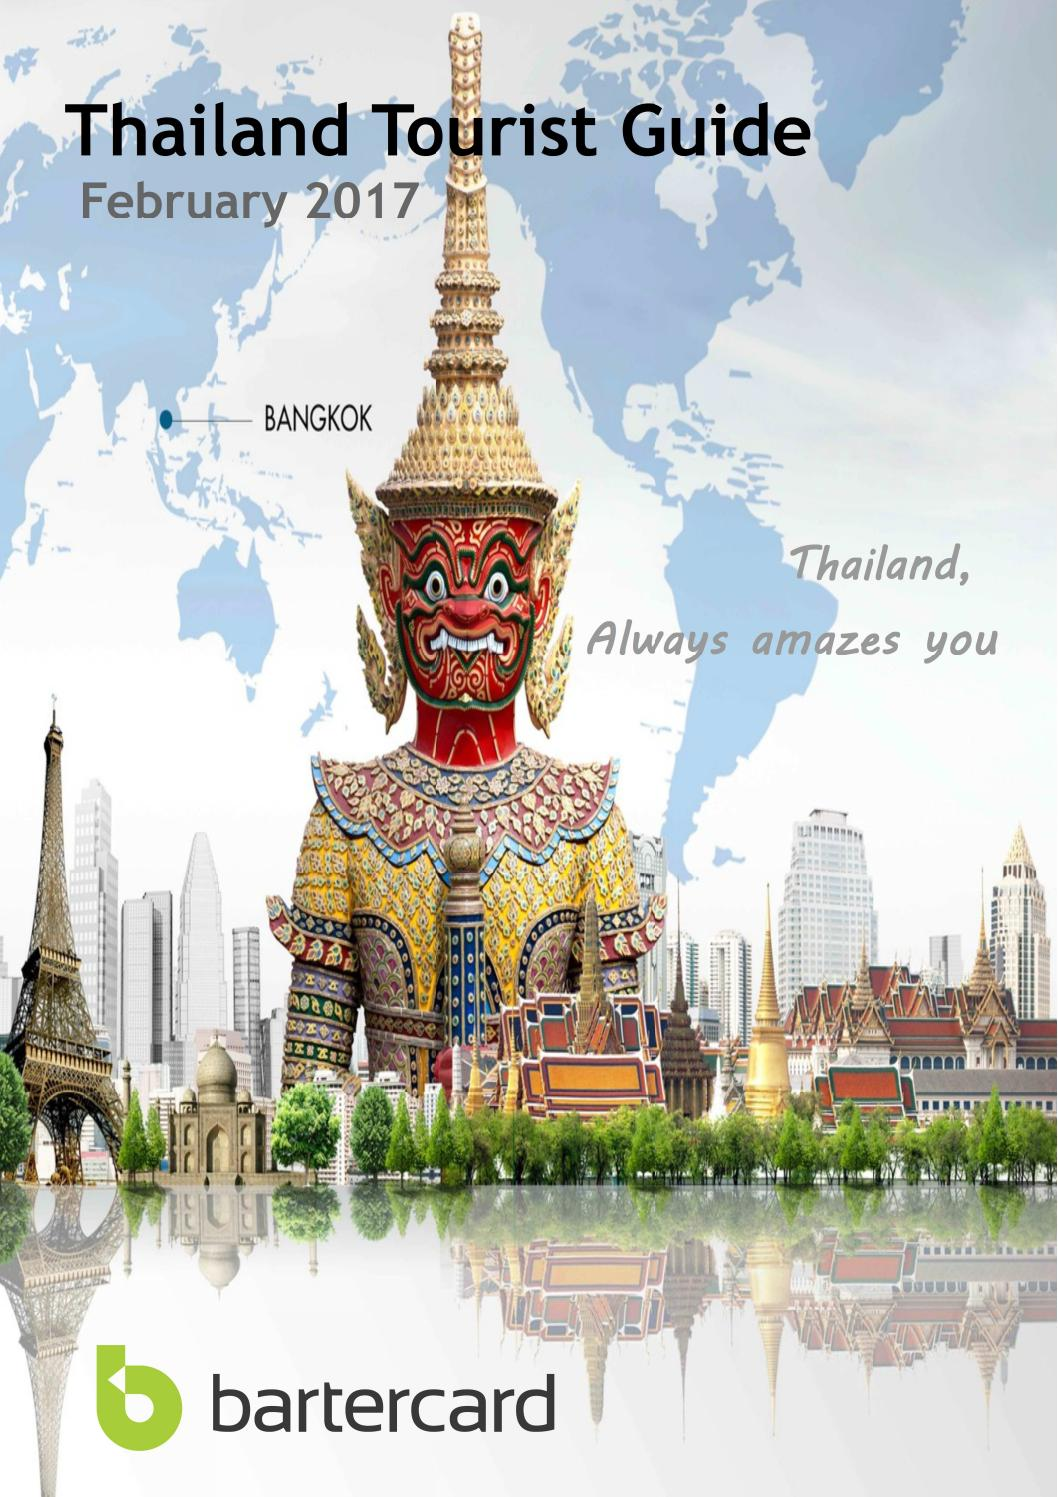 Thailand travel guide February 2017 by Bartercard Thailand